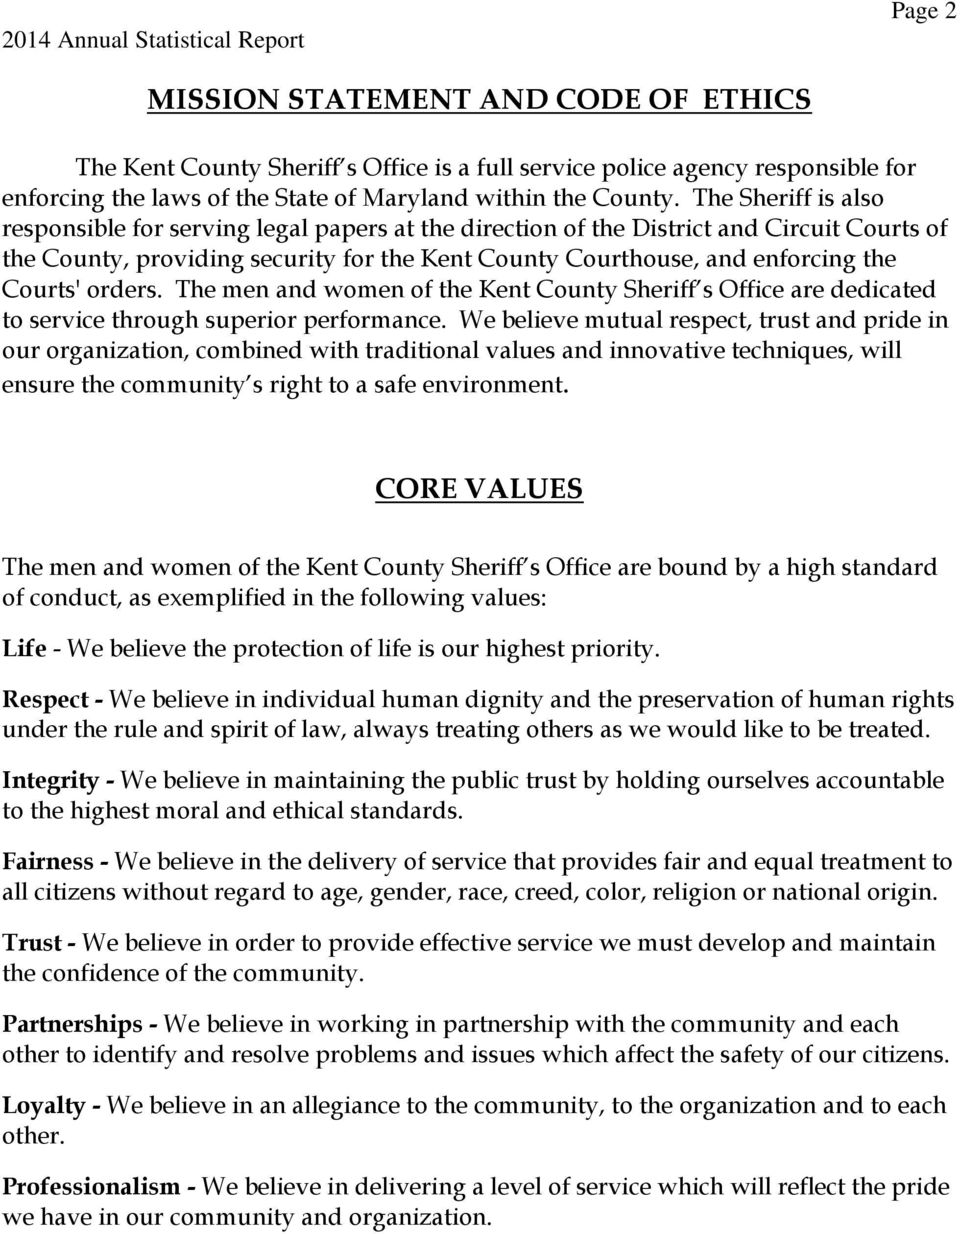 The Sheriff is also responsible for serving legal papers at the direction of the District and Circuit Courts of the County, providing security for the Kent County Courthouse, and enforcing the